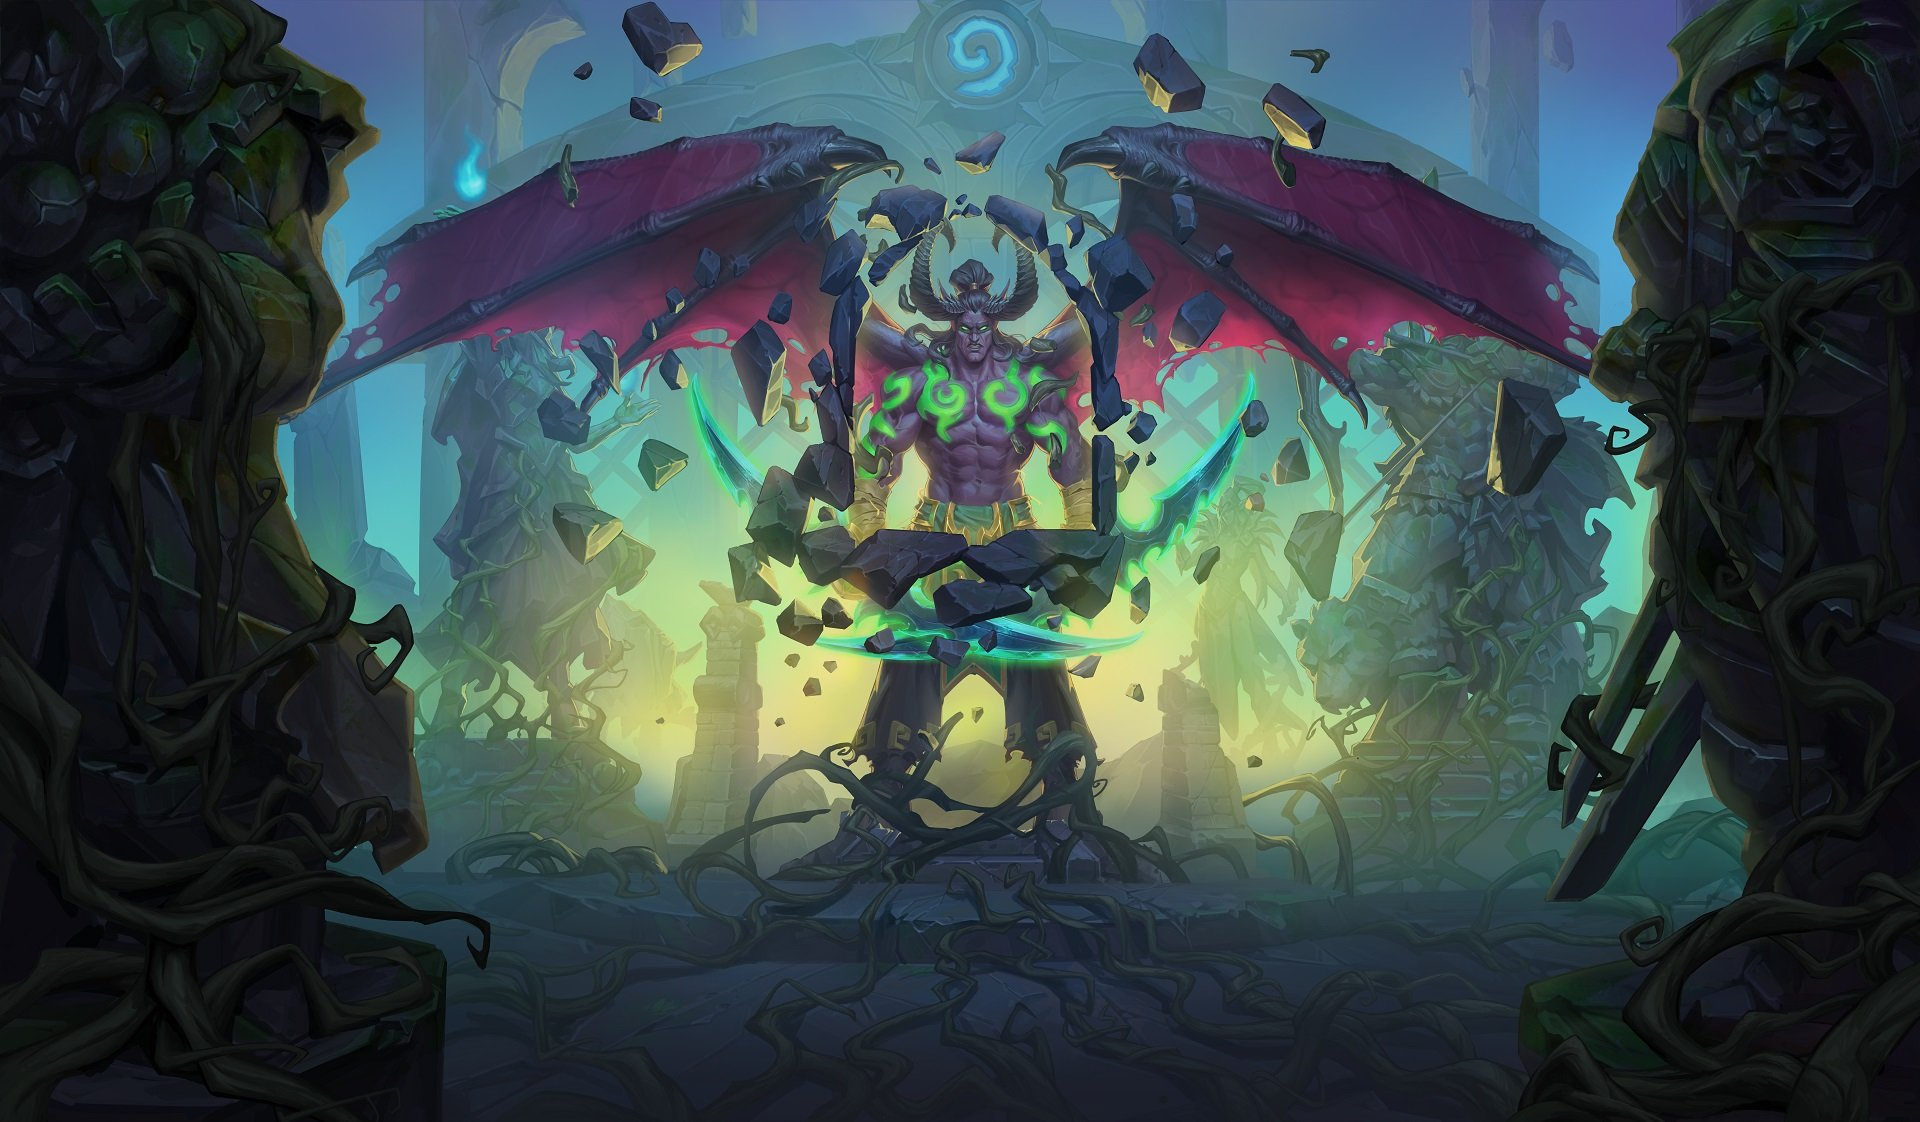 Hearthstone - Illidan Stormrage